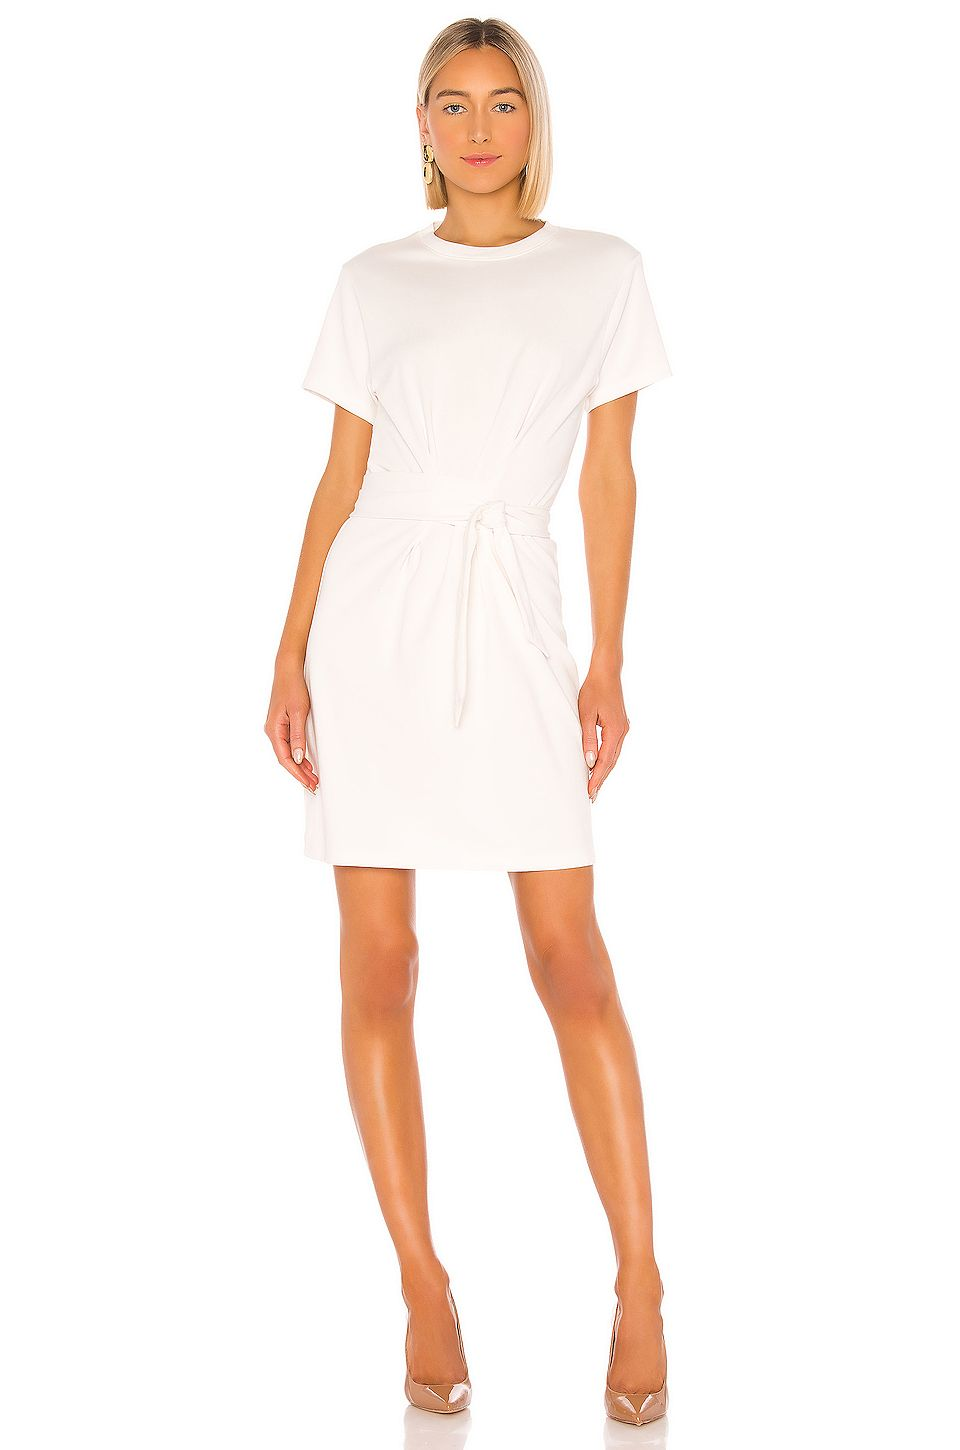 Vince Short Sleeve Waist Tie Dress In Off White Ad Affiliate Sleeve Waist White Short Mini Dress Hot Fashion Clothes Women Clothes For Women [ 1450 x 960 Pixel ]